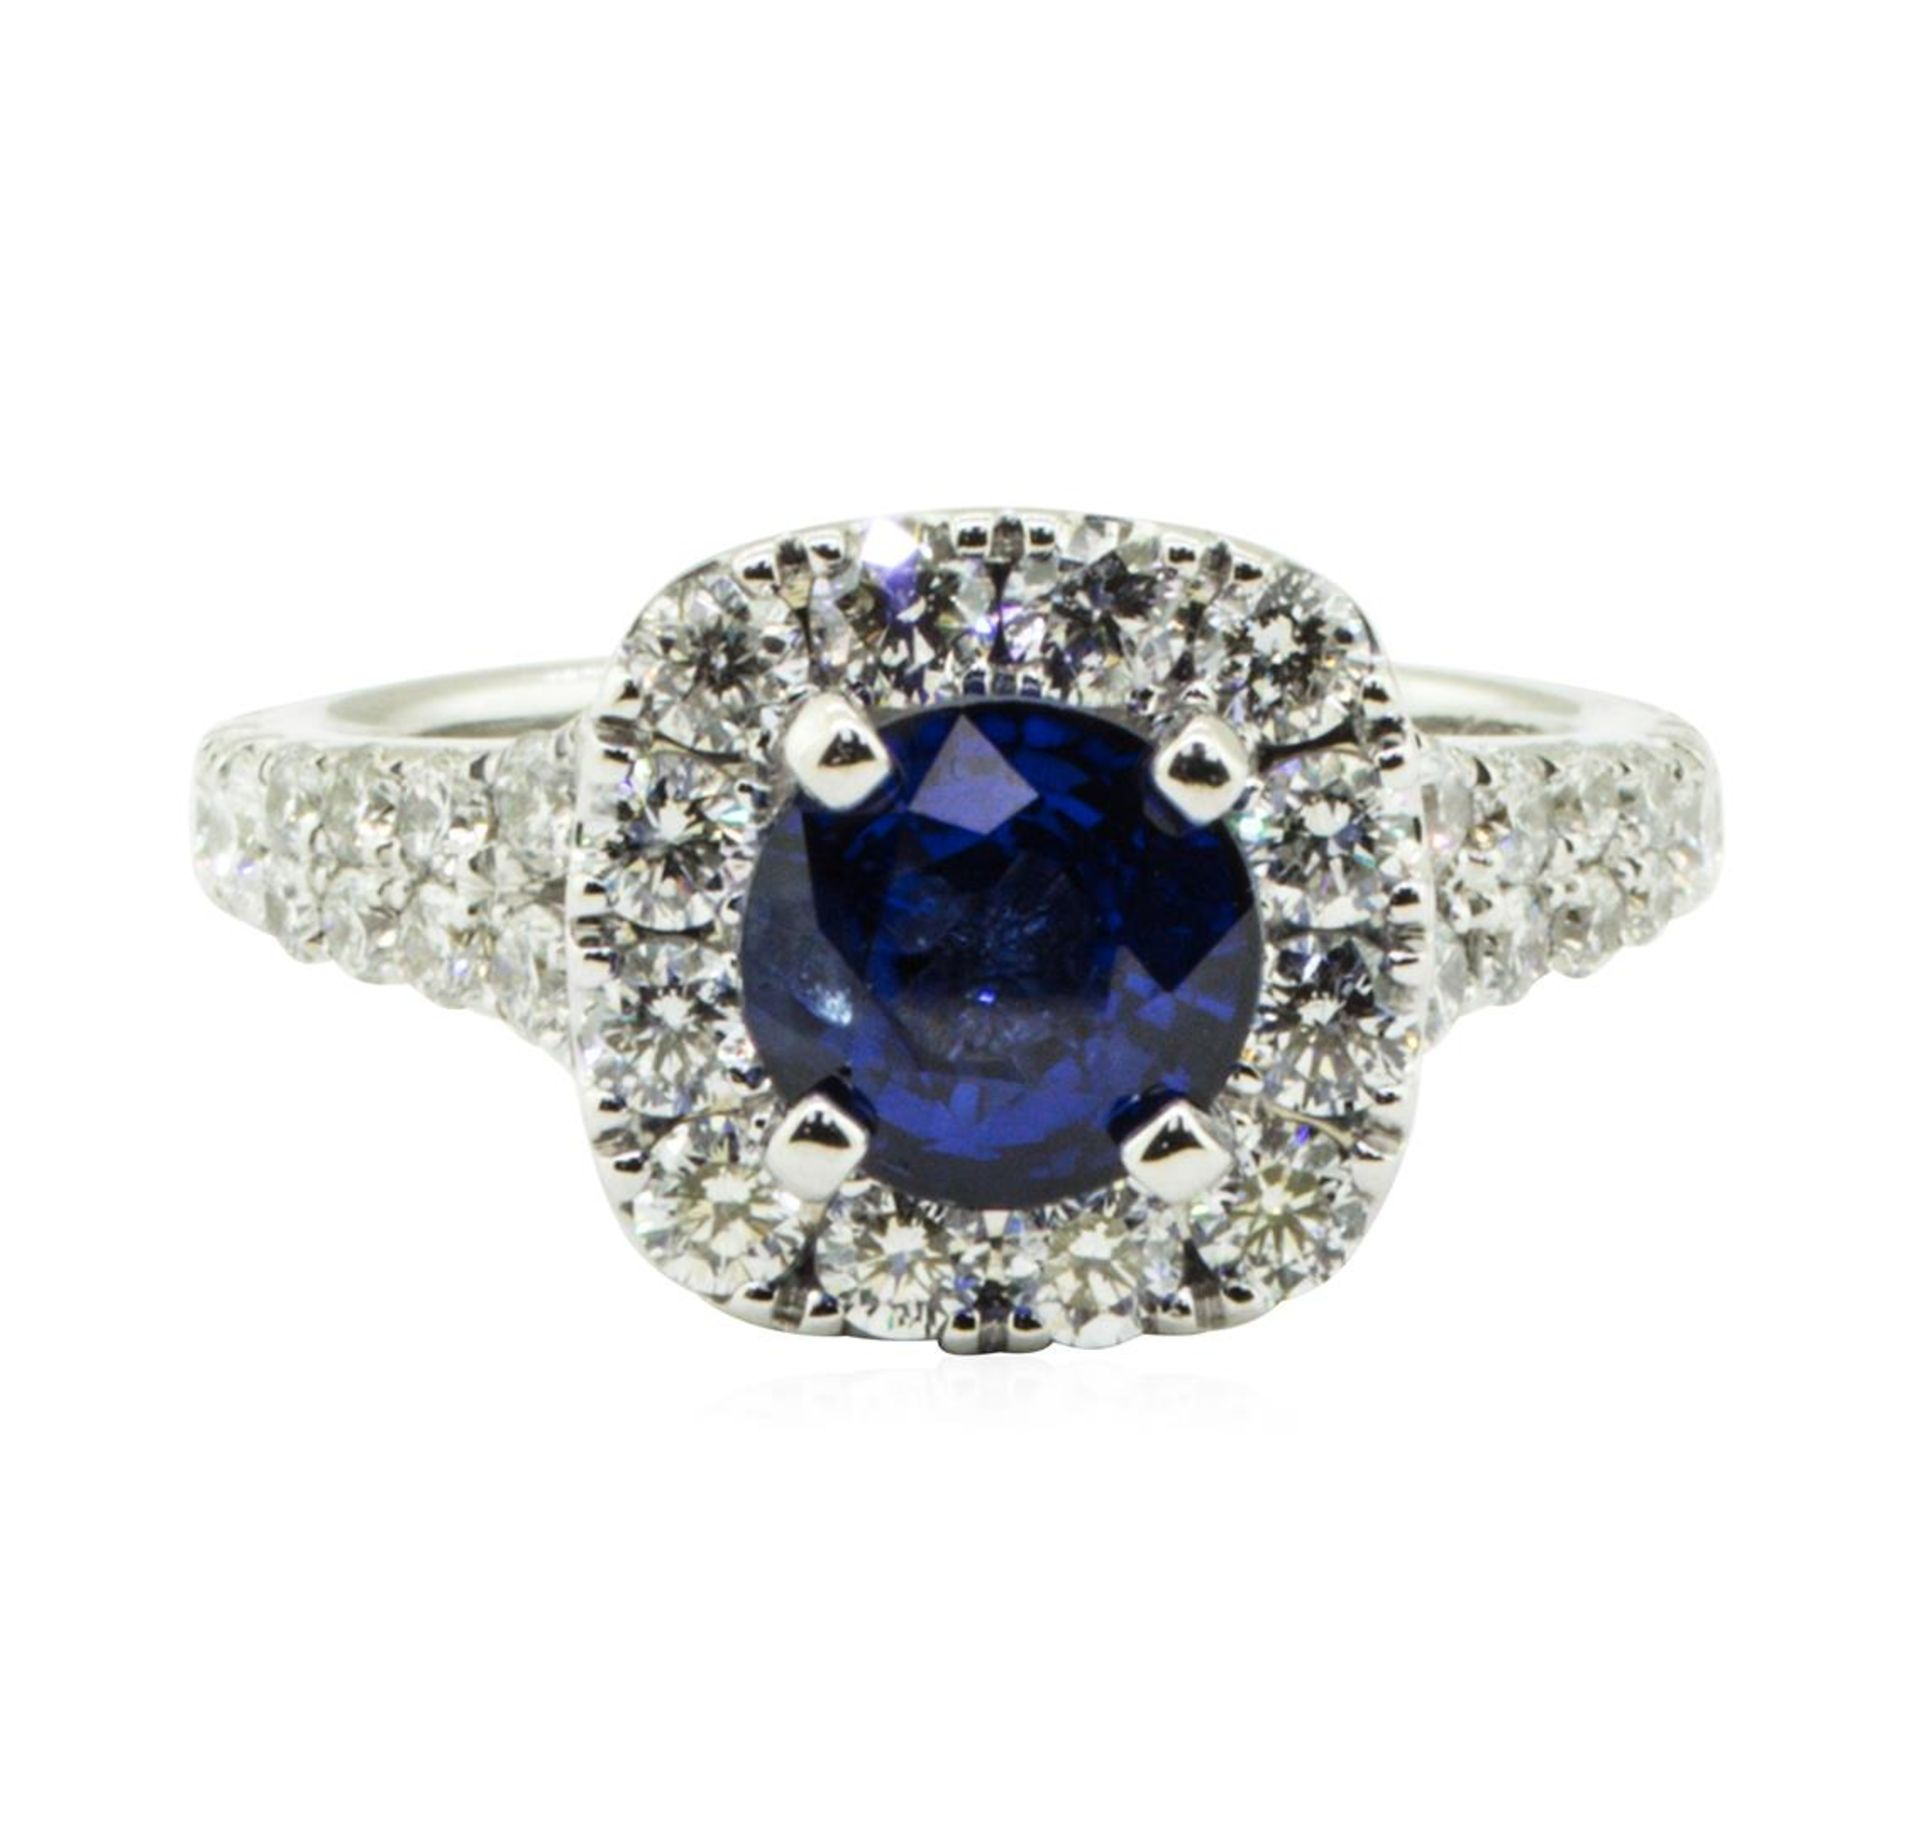 2.47 ctw Round Brilliant Blue Sapphire And Diamond Ring - 14KT White Gold - Image 2 of 5